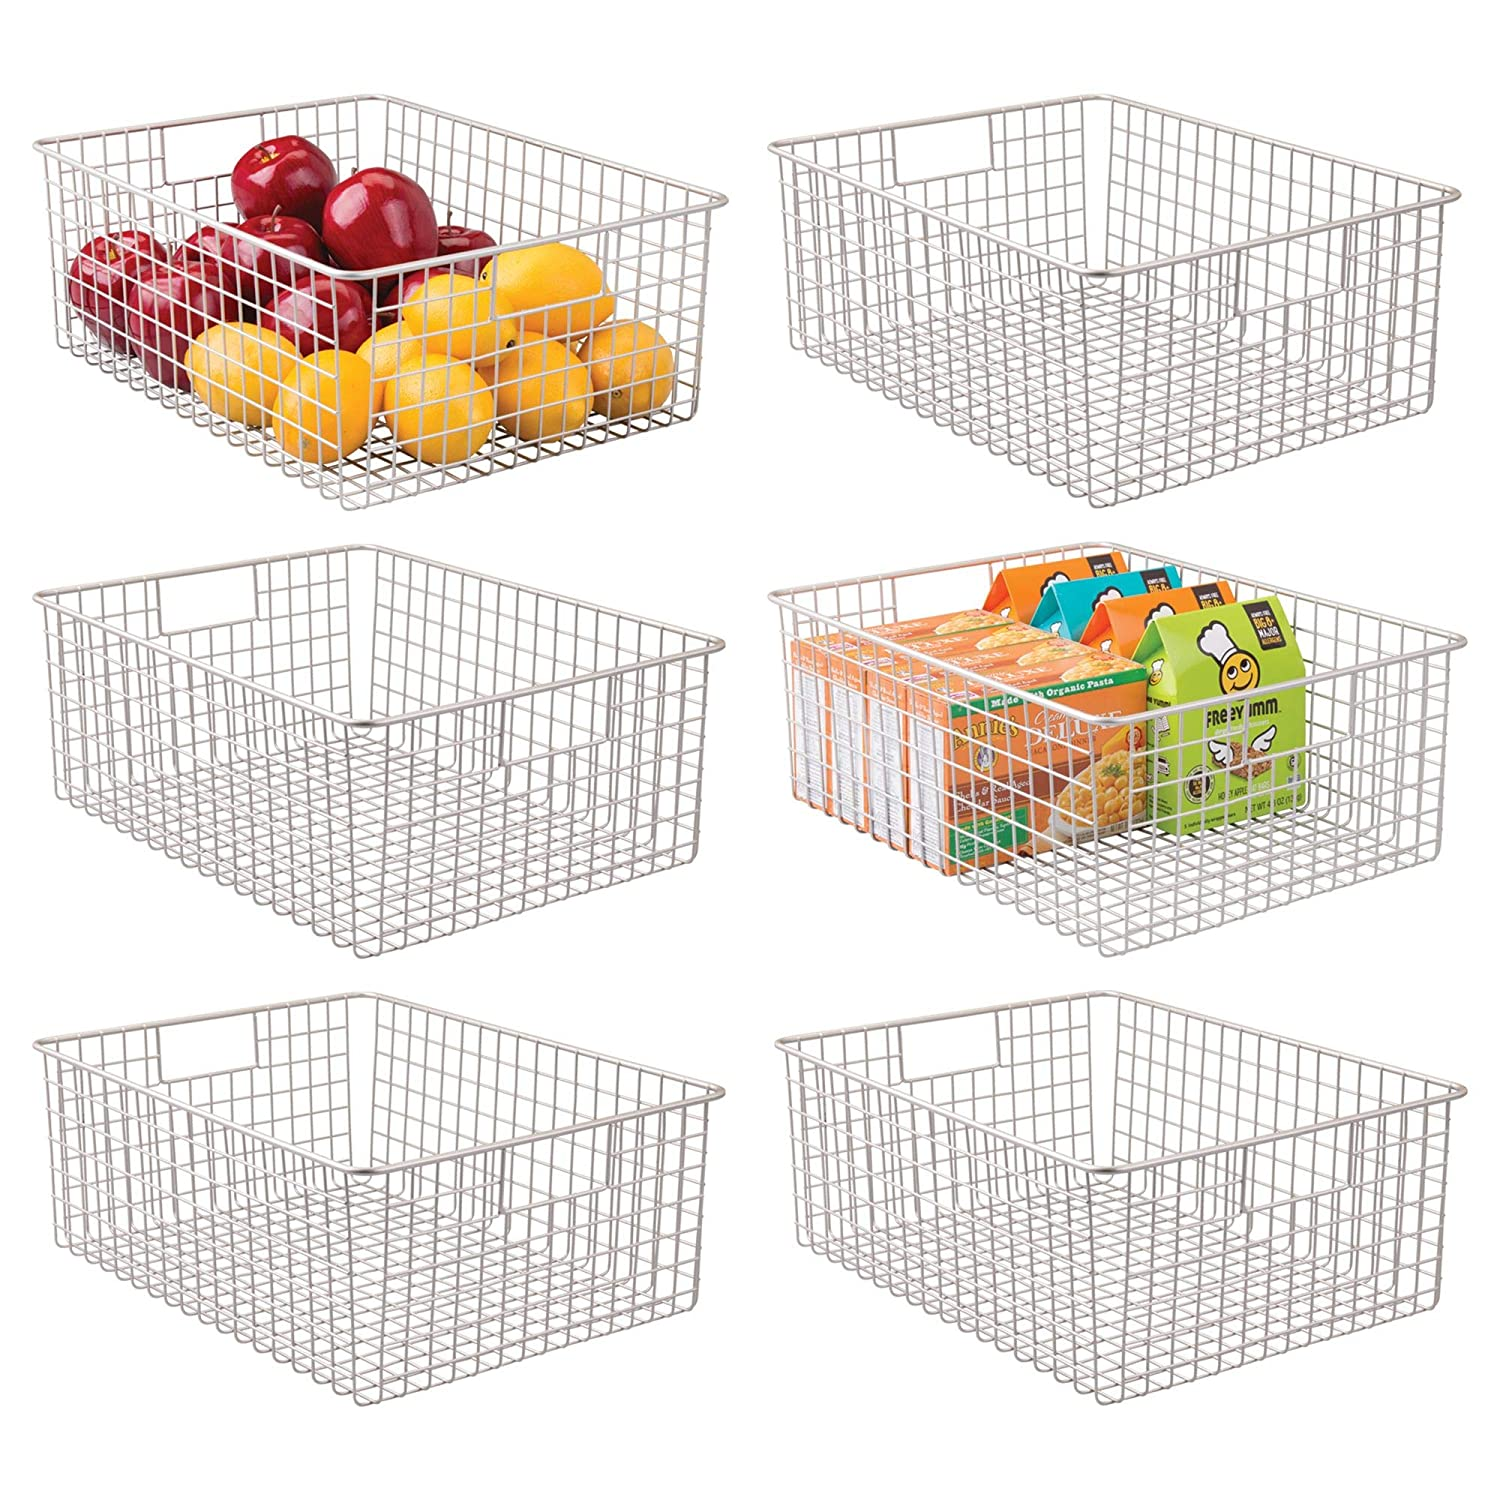 mDesign Farmhouse Decor Metal Wire Food Organizer Storage Bin Baskets with Handles for Kitchen Cabinets, Pantry, Bathroom, Laundry Room, Closets, Garage - 6 Pack - Satin